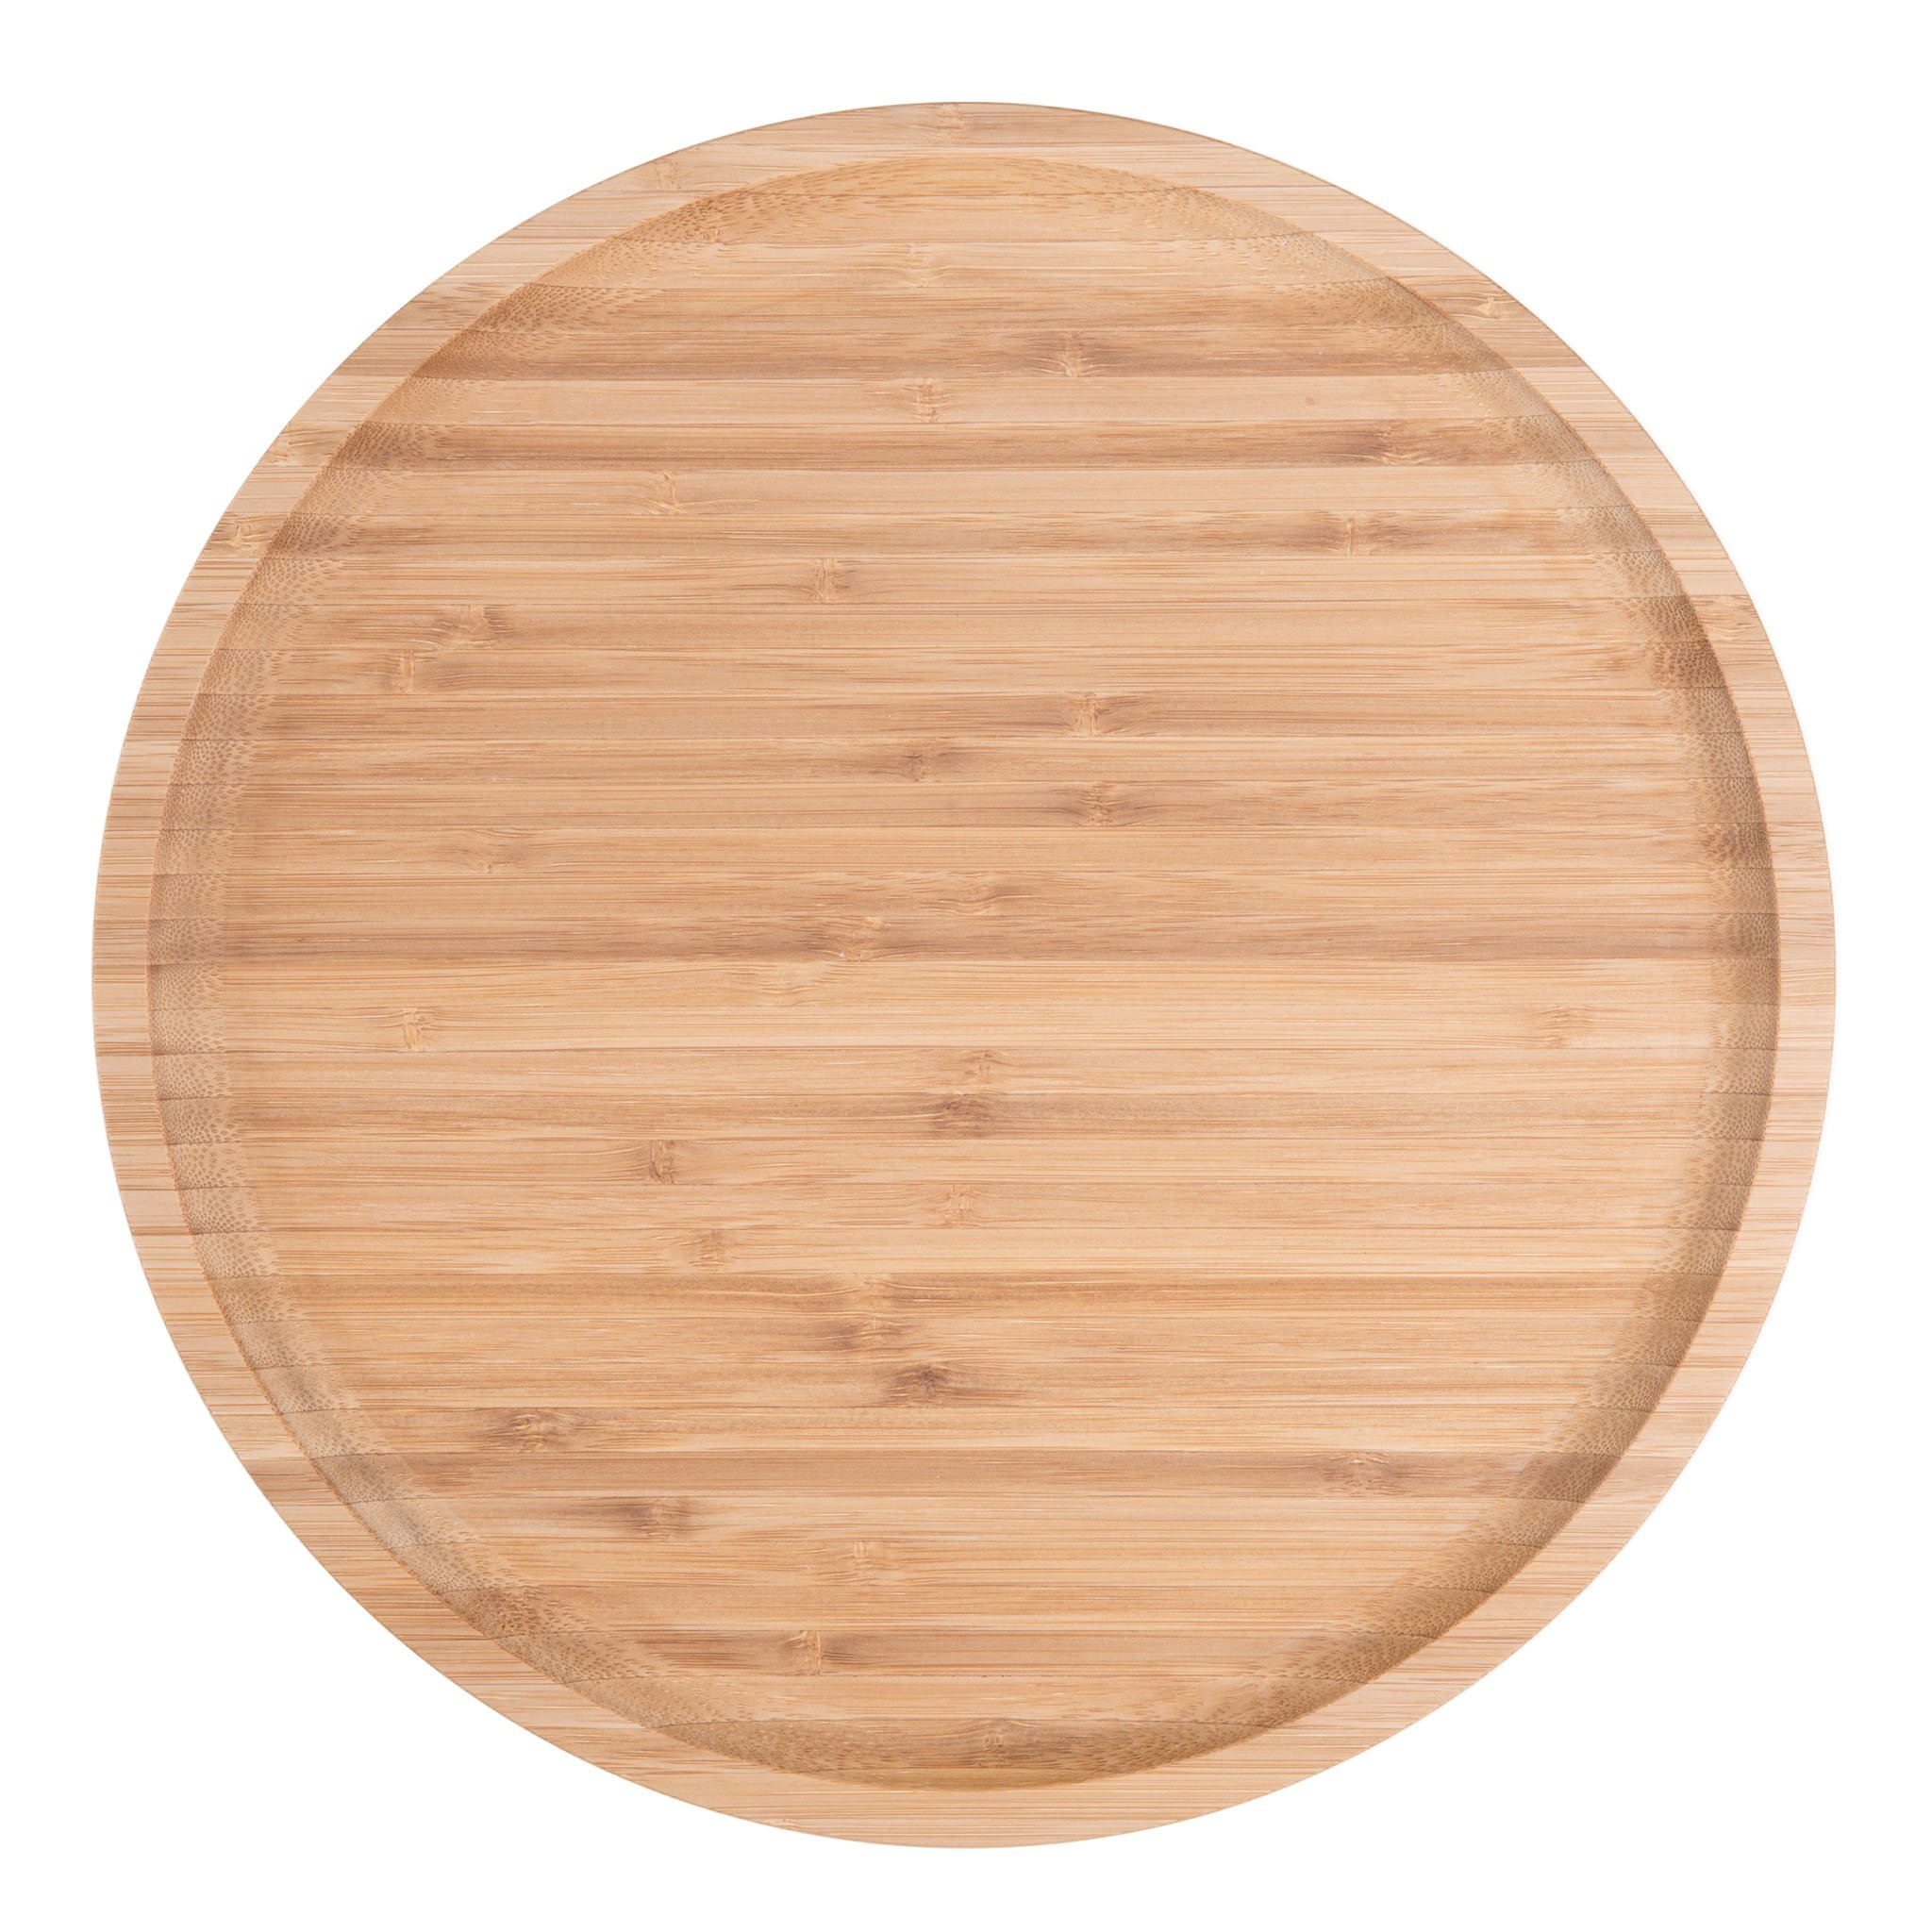 Bamboo Round Plates,12 Inches Cheese Plates Coffee Tea Serving Tray Fruit platters Party Dinner Plates Sour Candy Tray